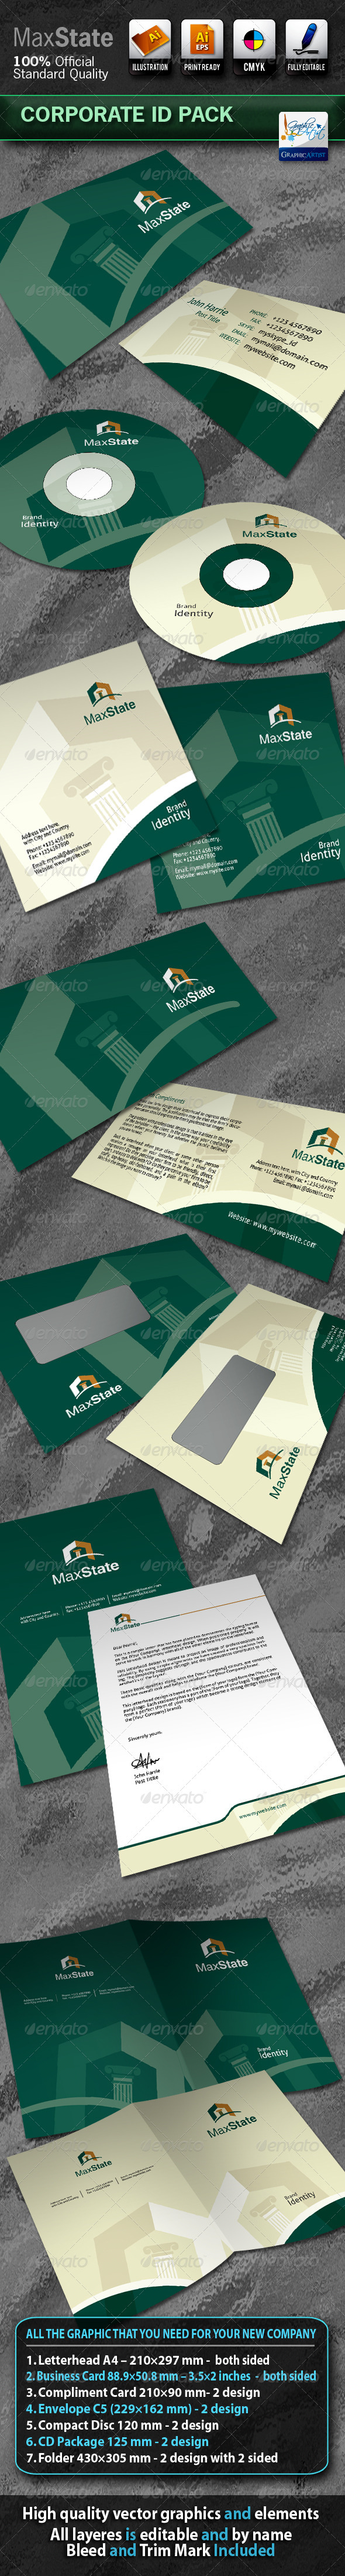 MaxState Business Corporate ID Pack With Logo - Stationery Print Templates